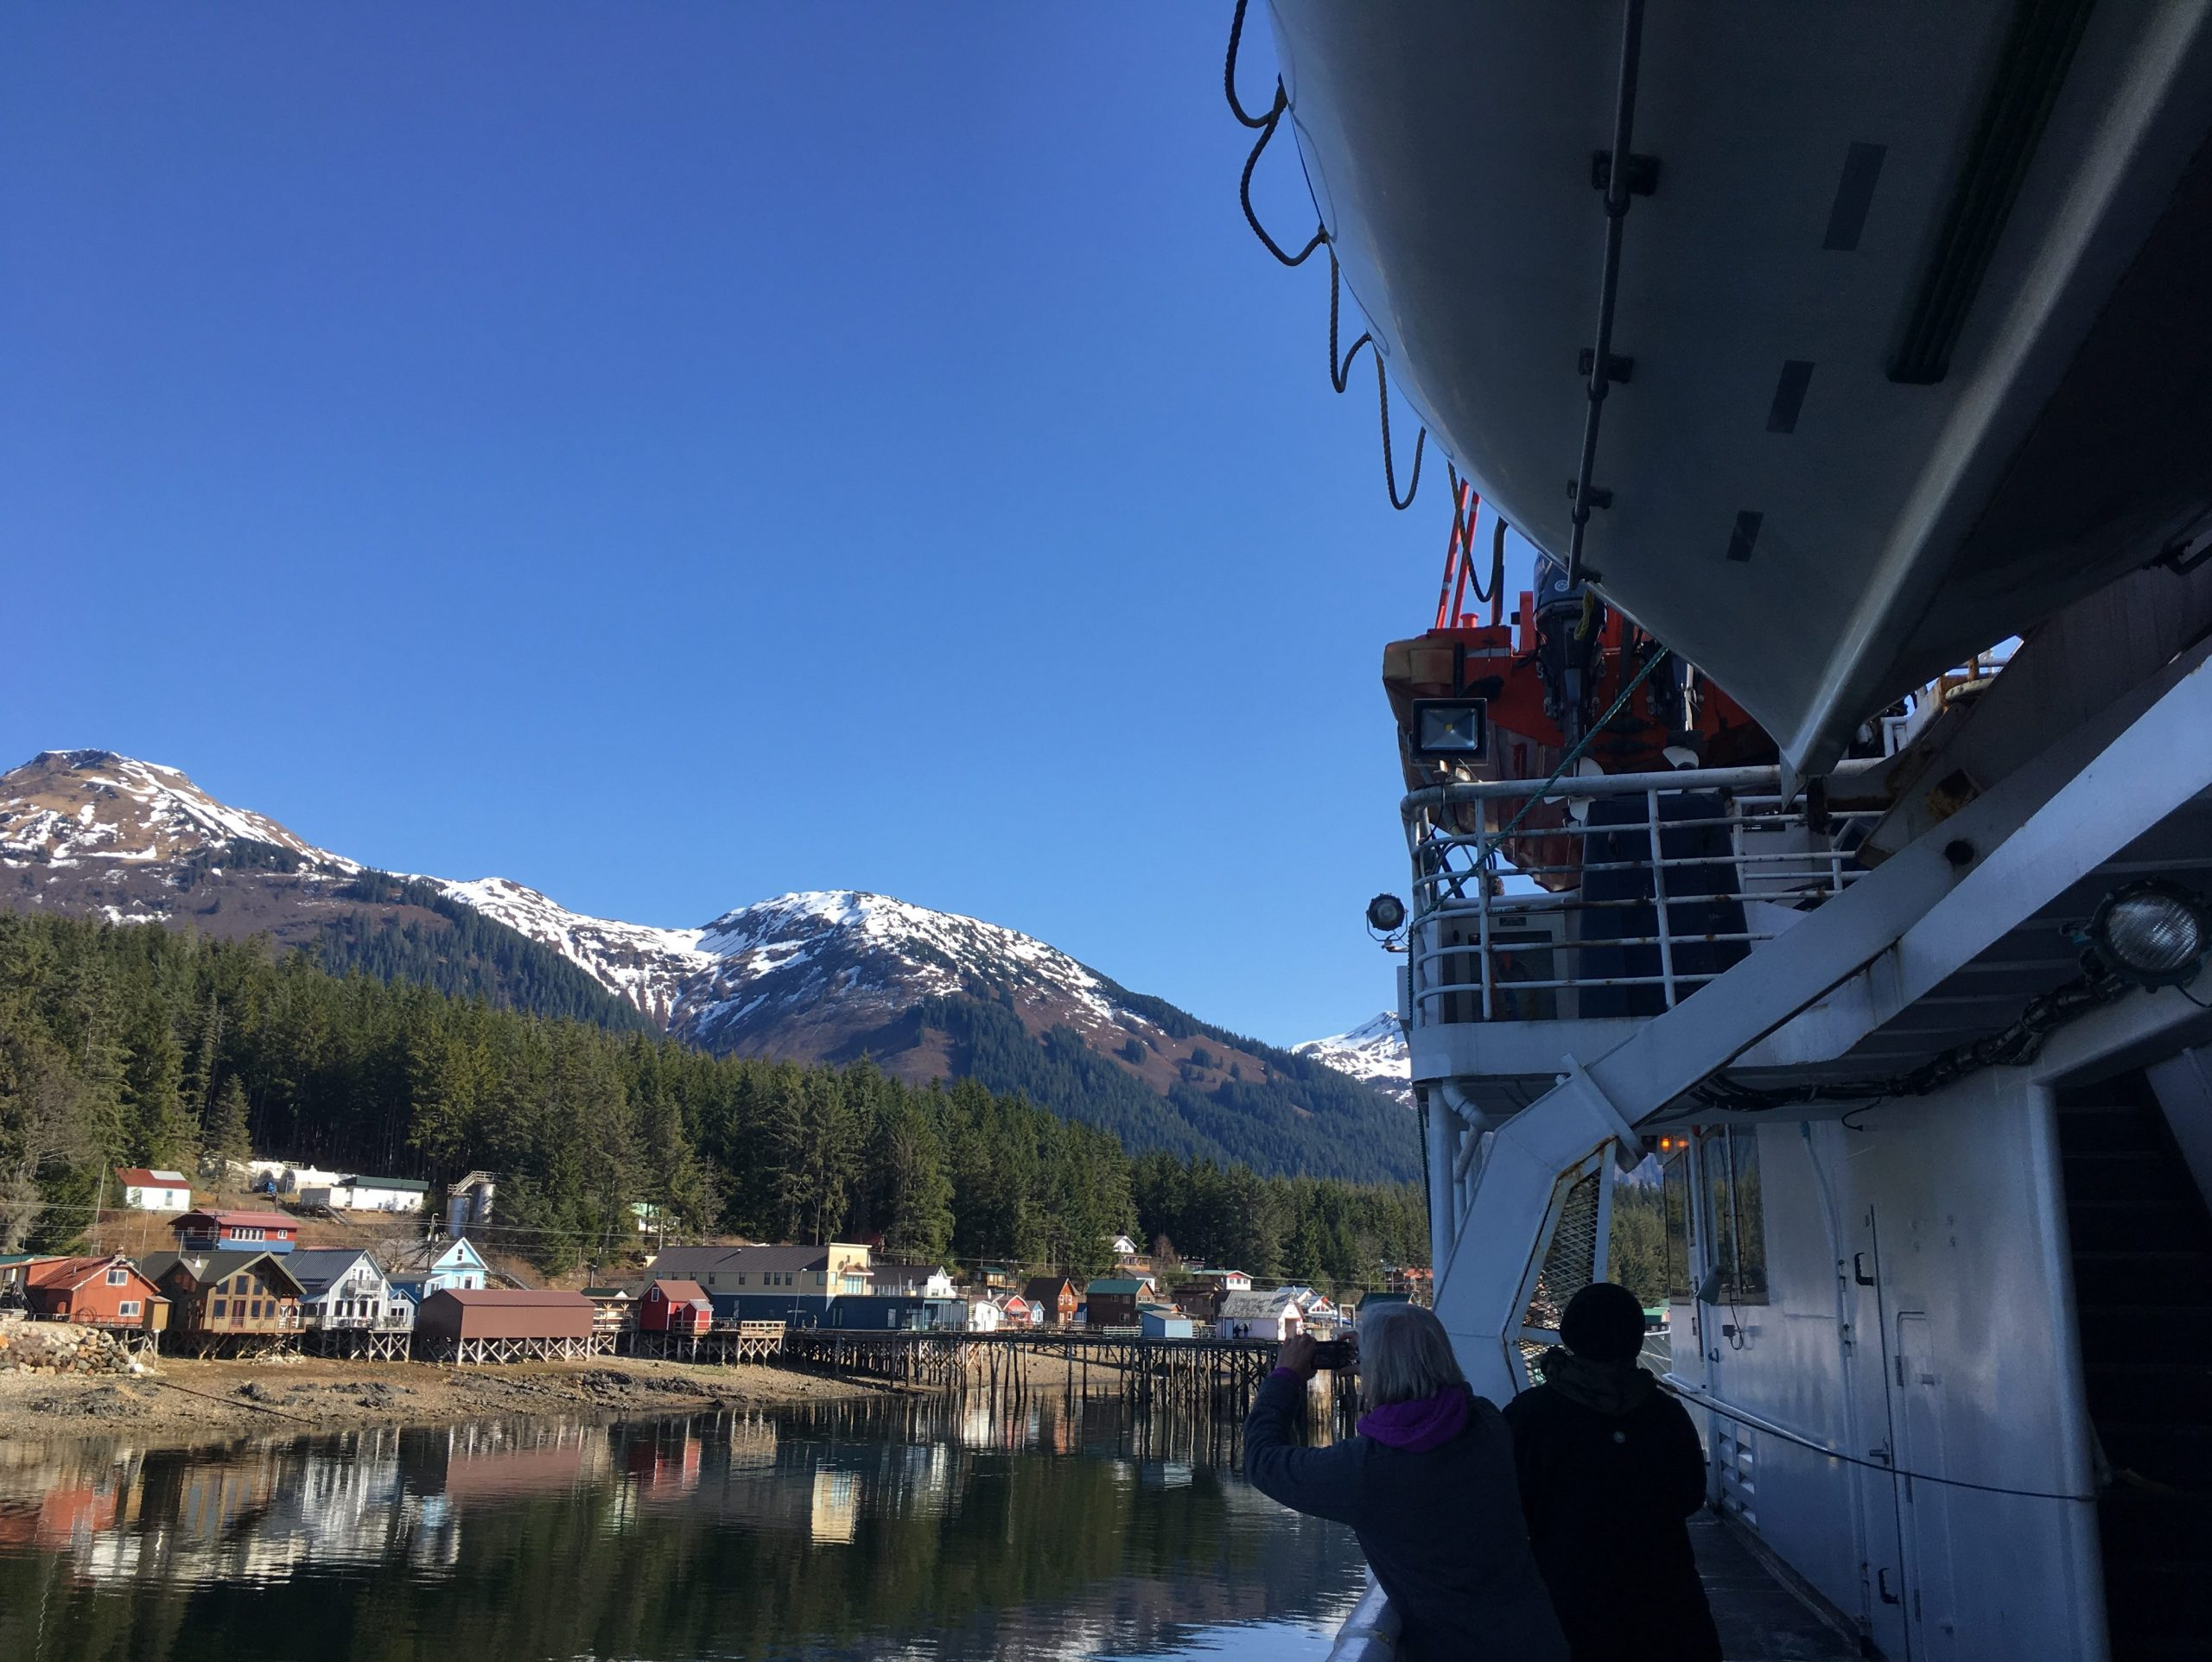 A ferry approaches a town next to spruce covered mountains